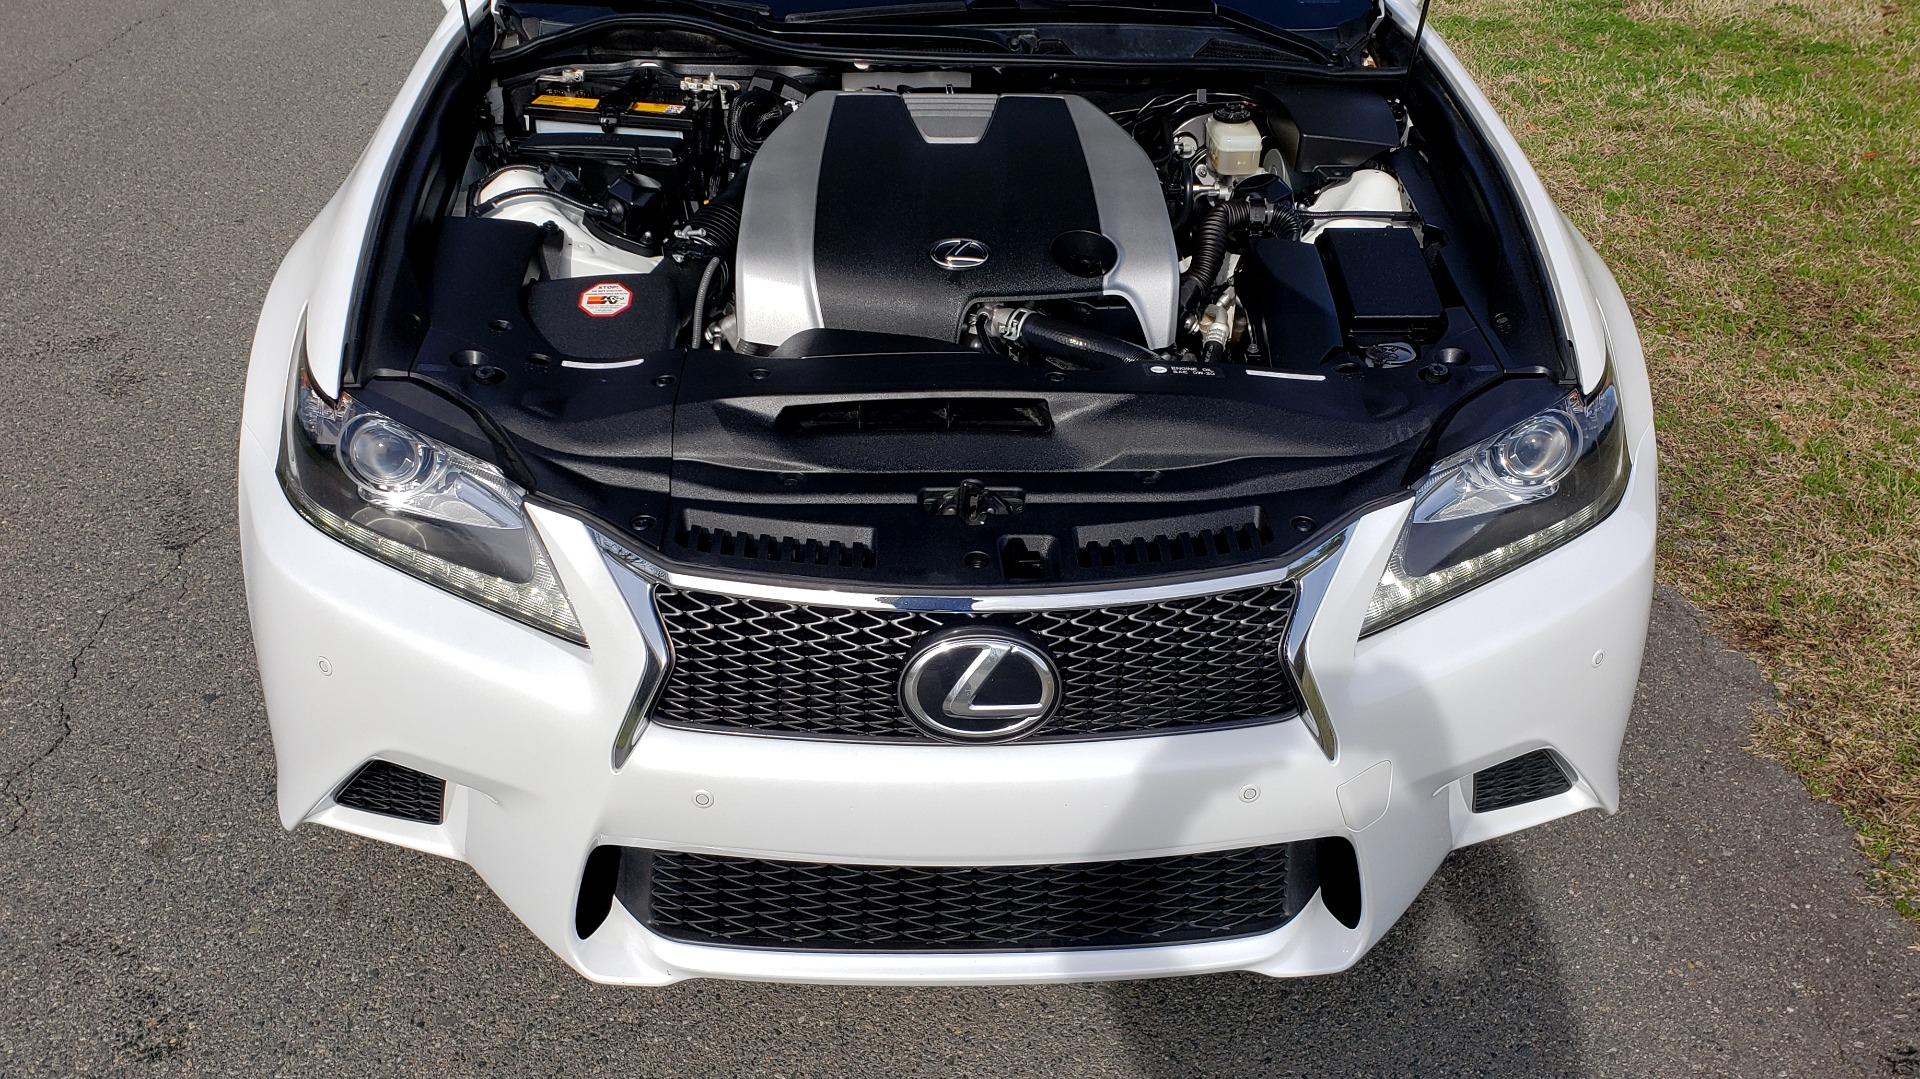 Used 2013 Lexus GS 350 F-SPORT / NAV / SUNROOF / BSM / PRK ASST / REARVIEW for sale Sold at Formula Imports in Charlotte NC 28227 10